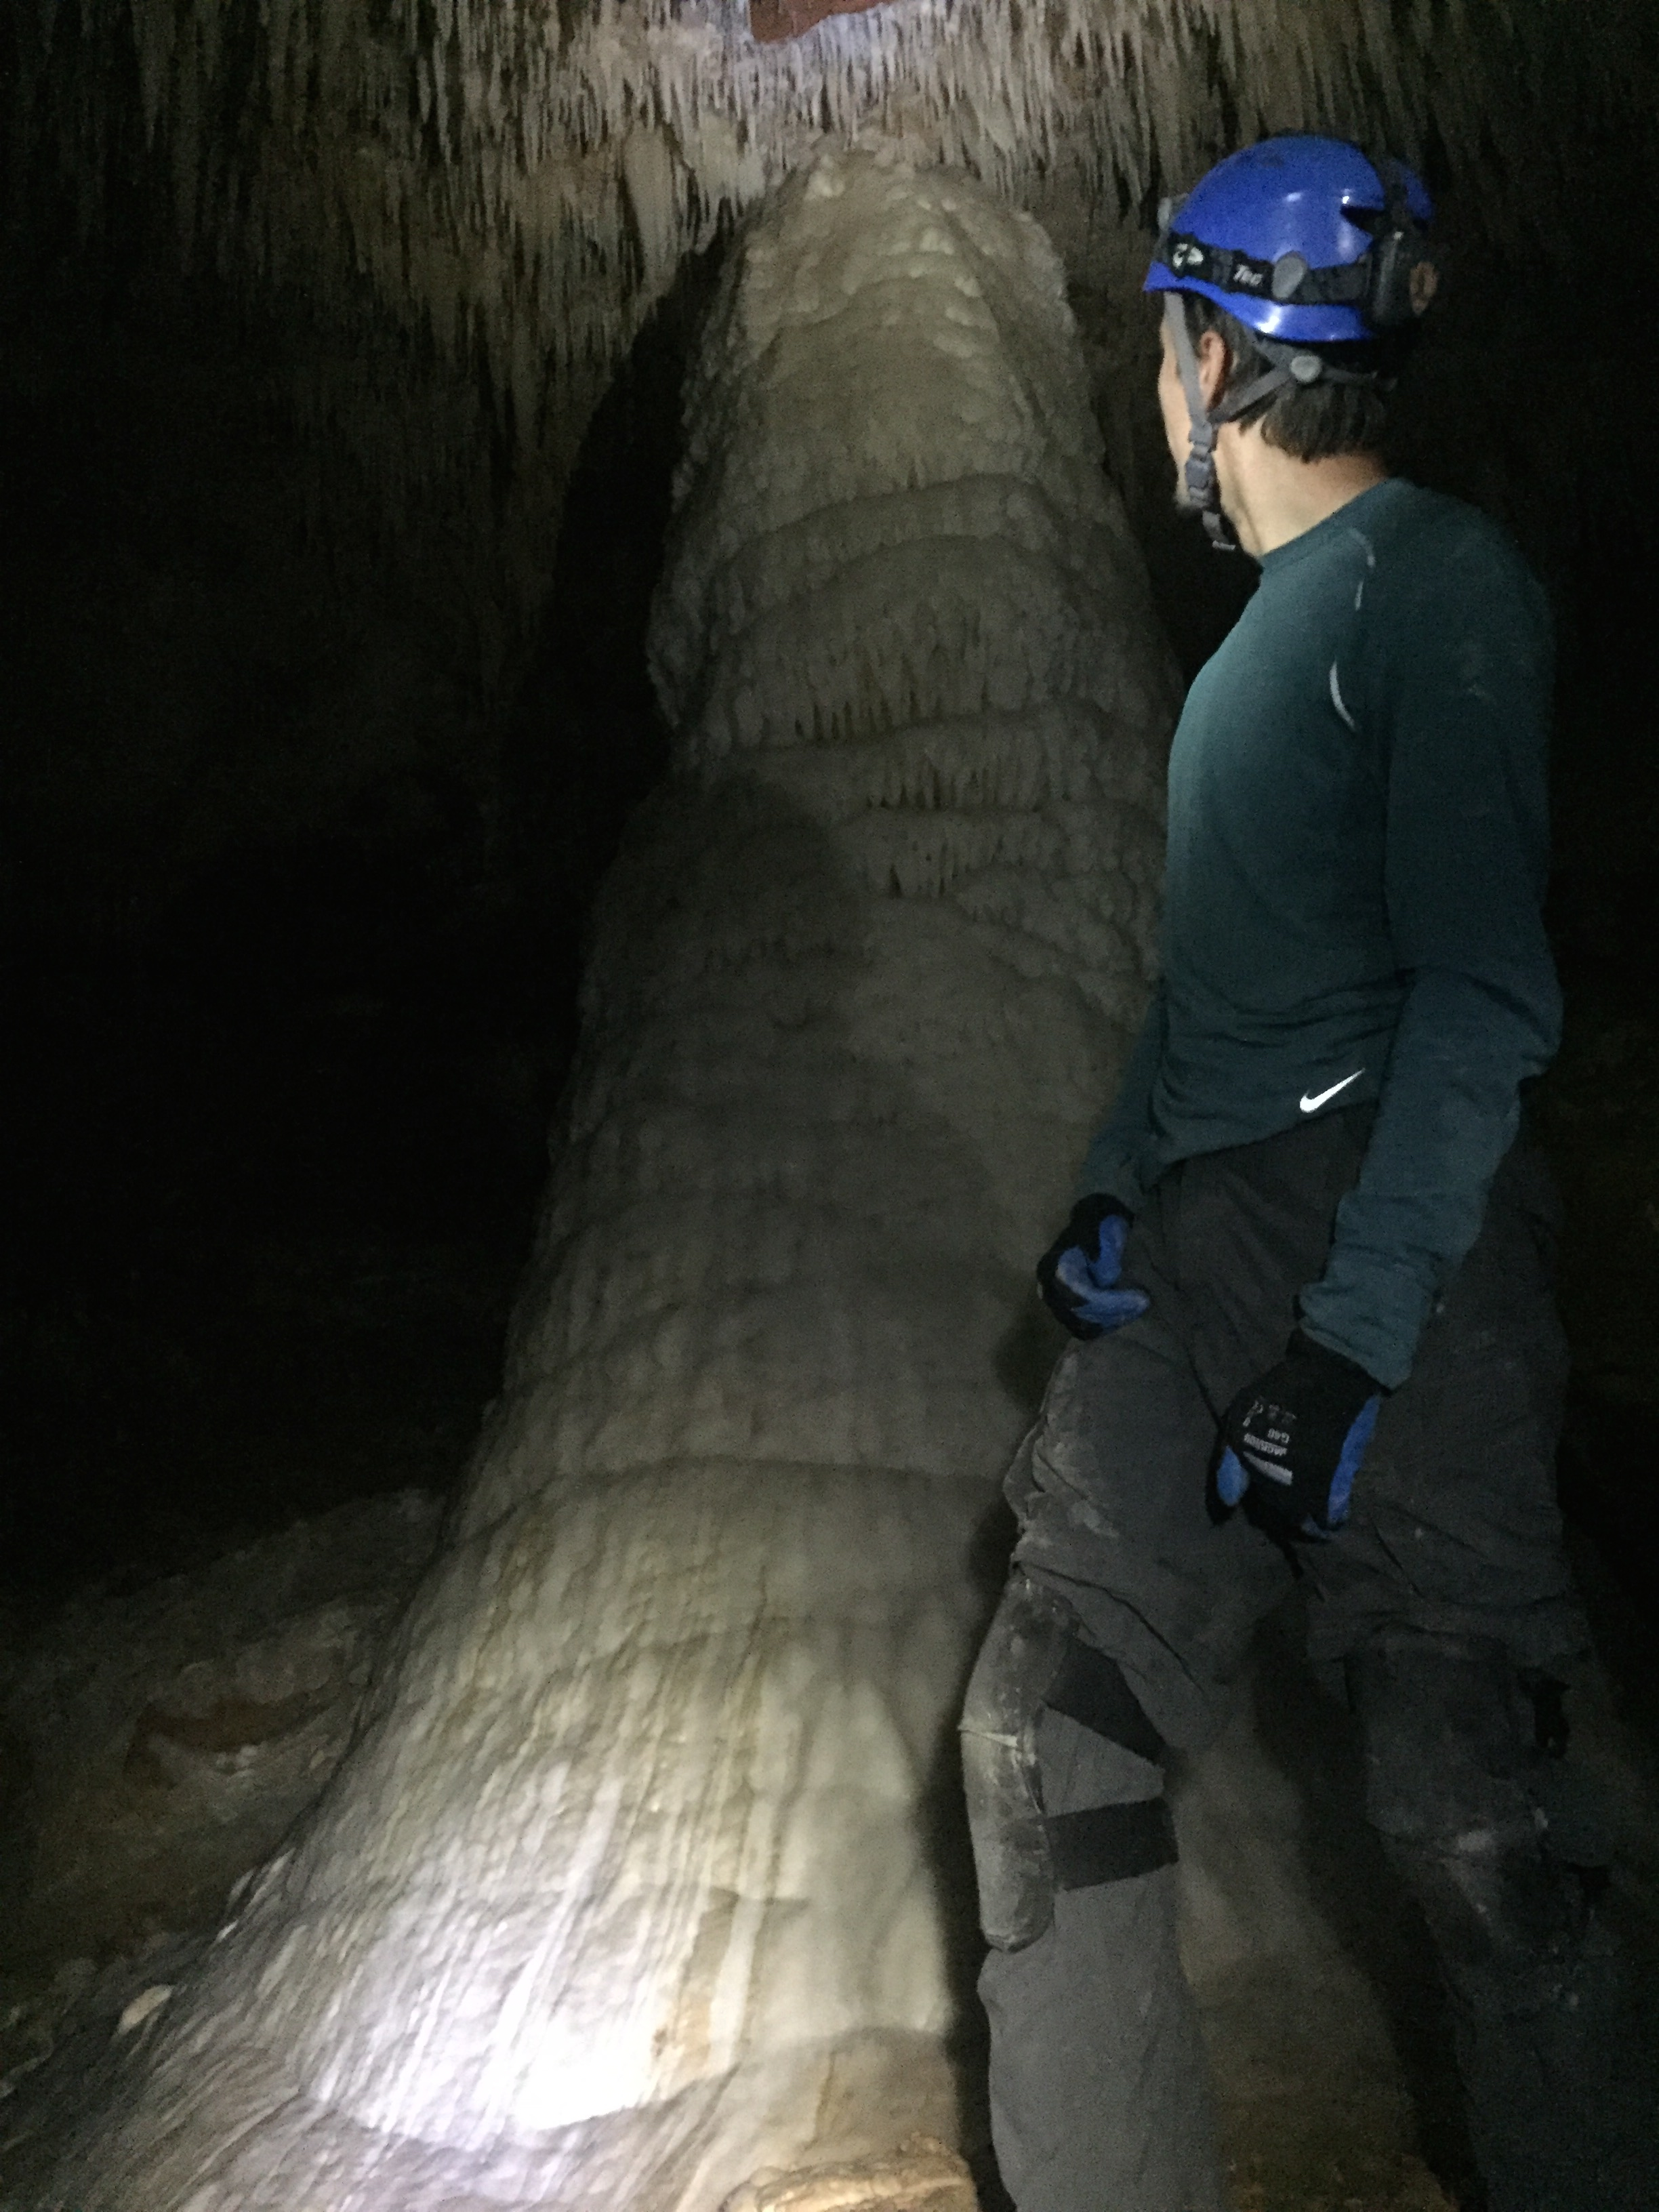 CARLSBAD CAVERNS: Cave of Wonders for all Ages